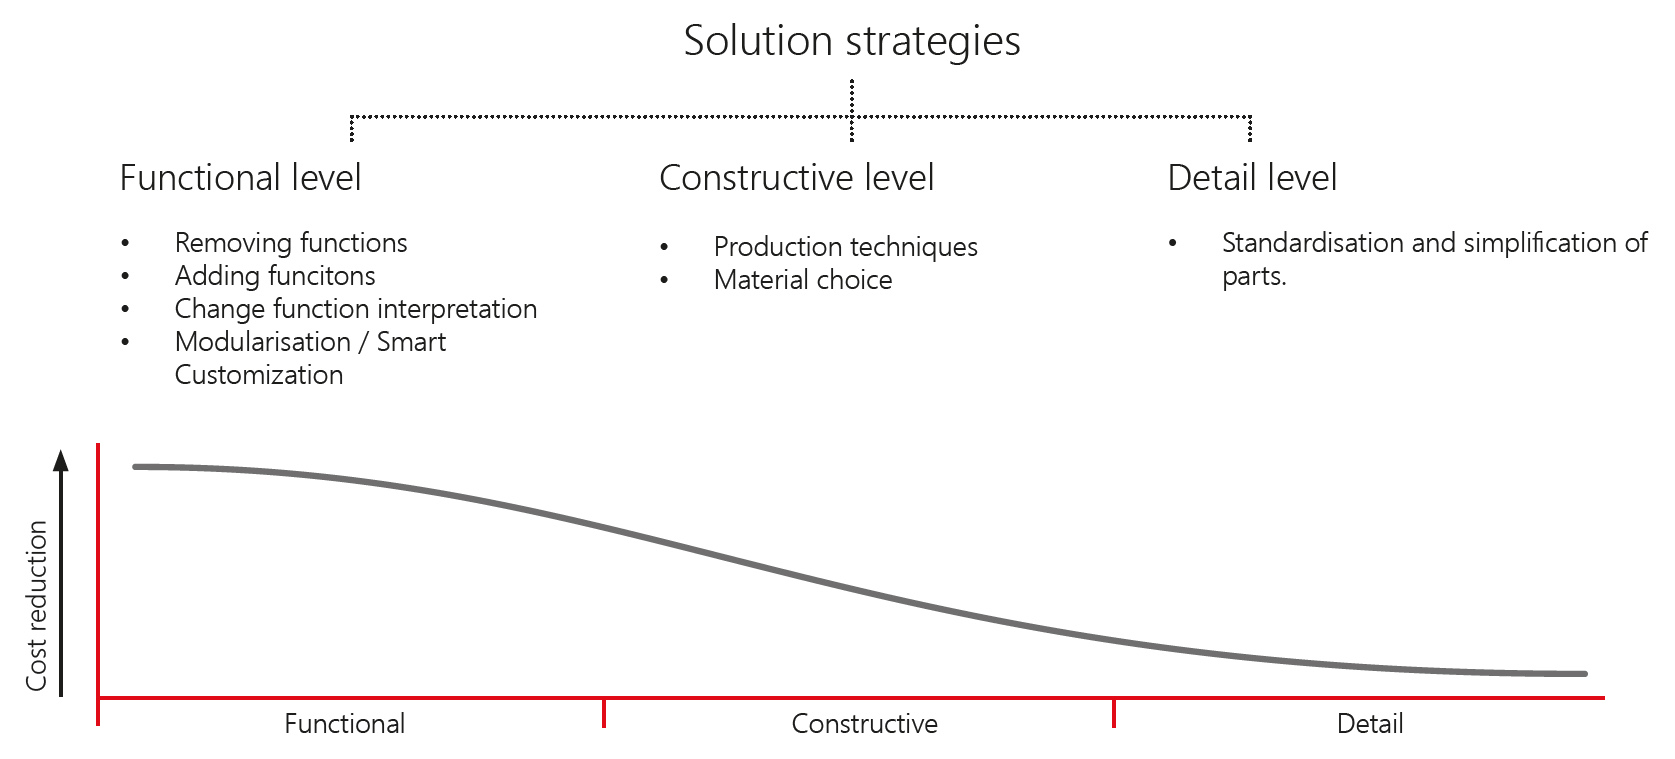 value engineering, solution strategies